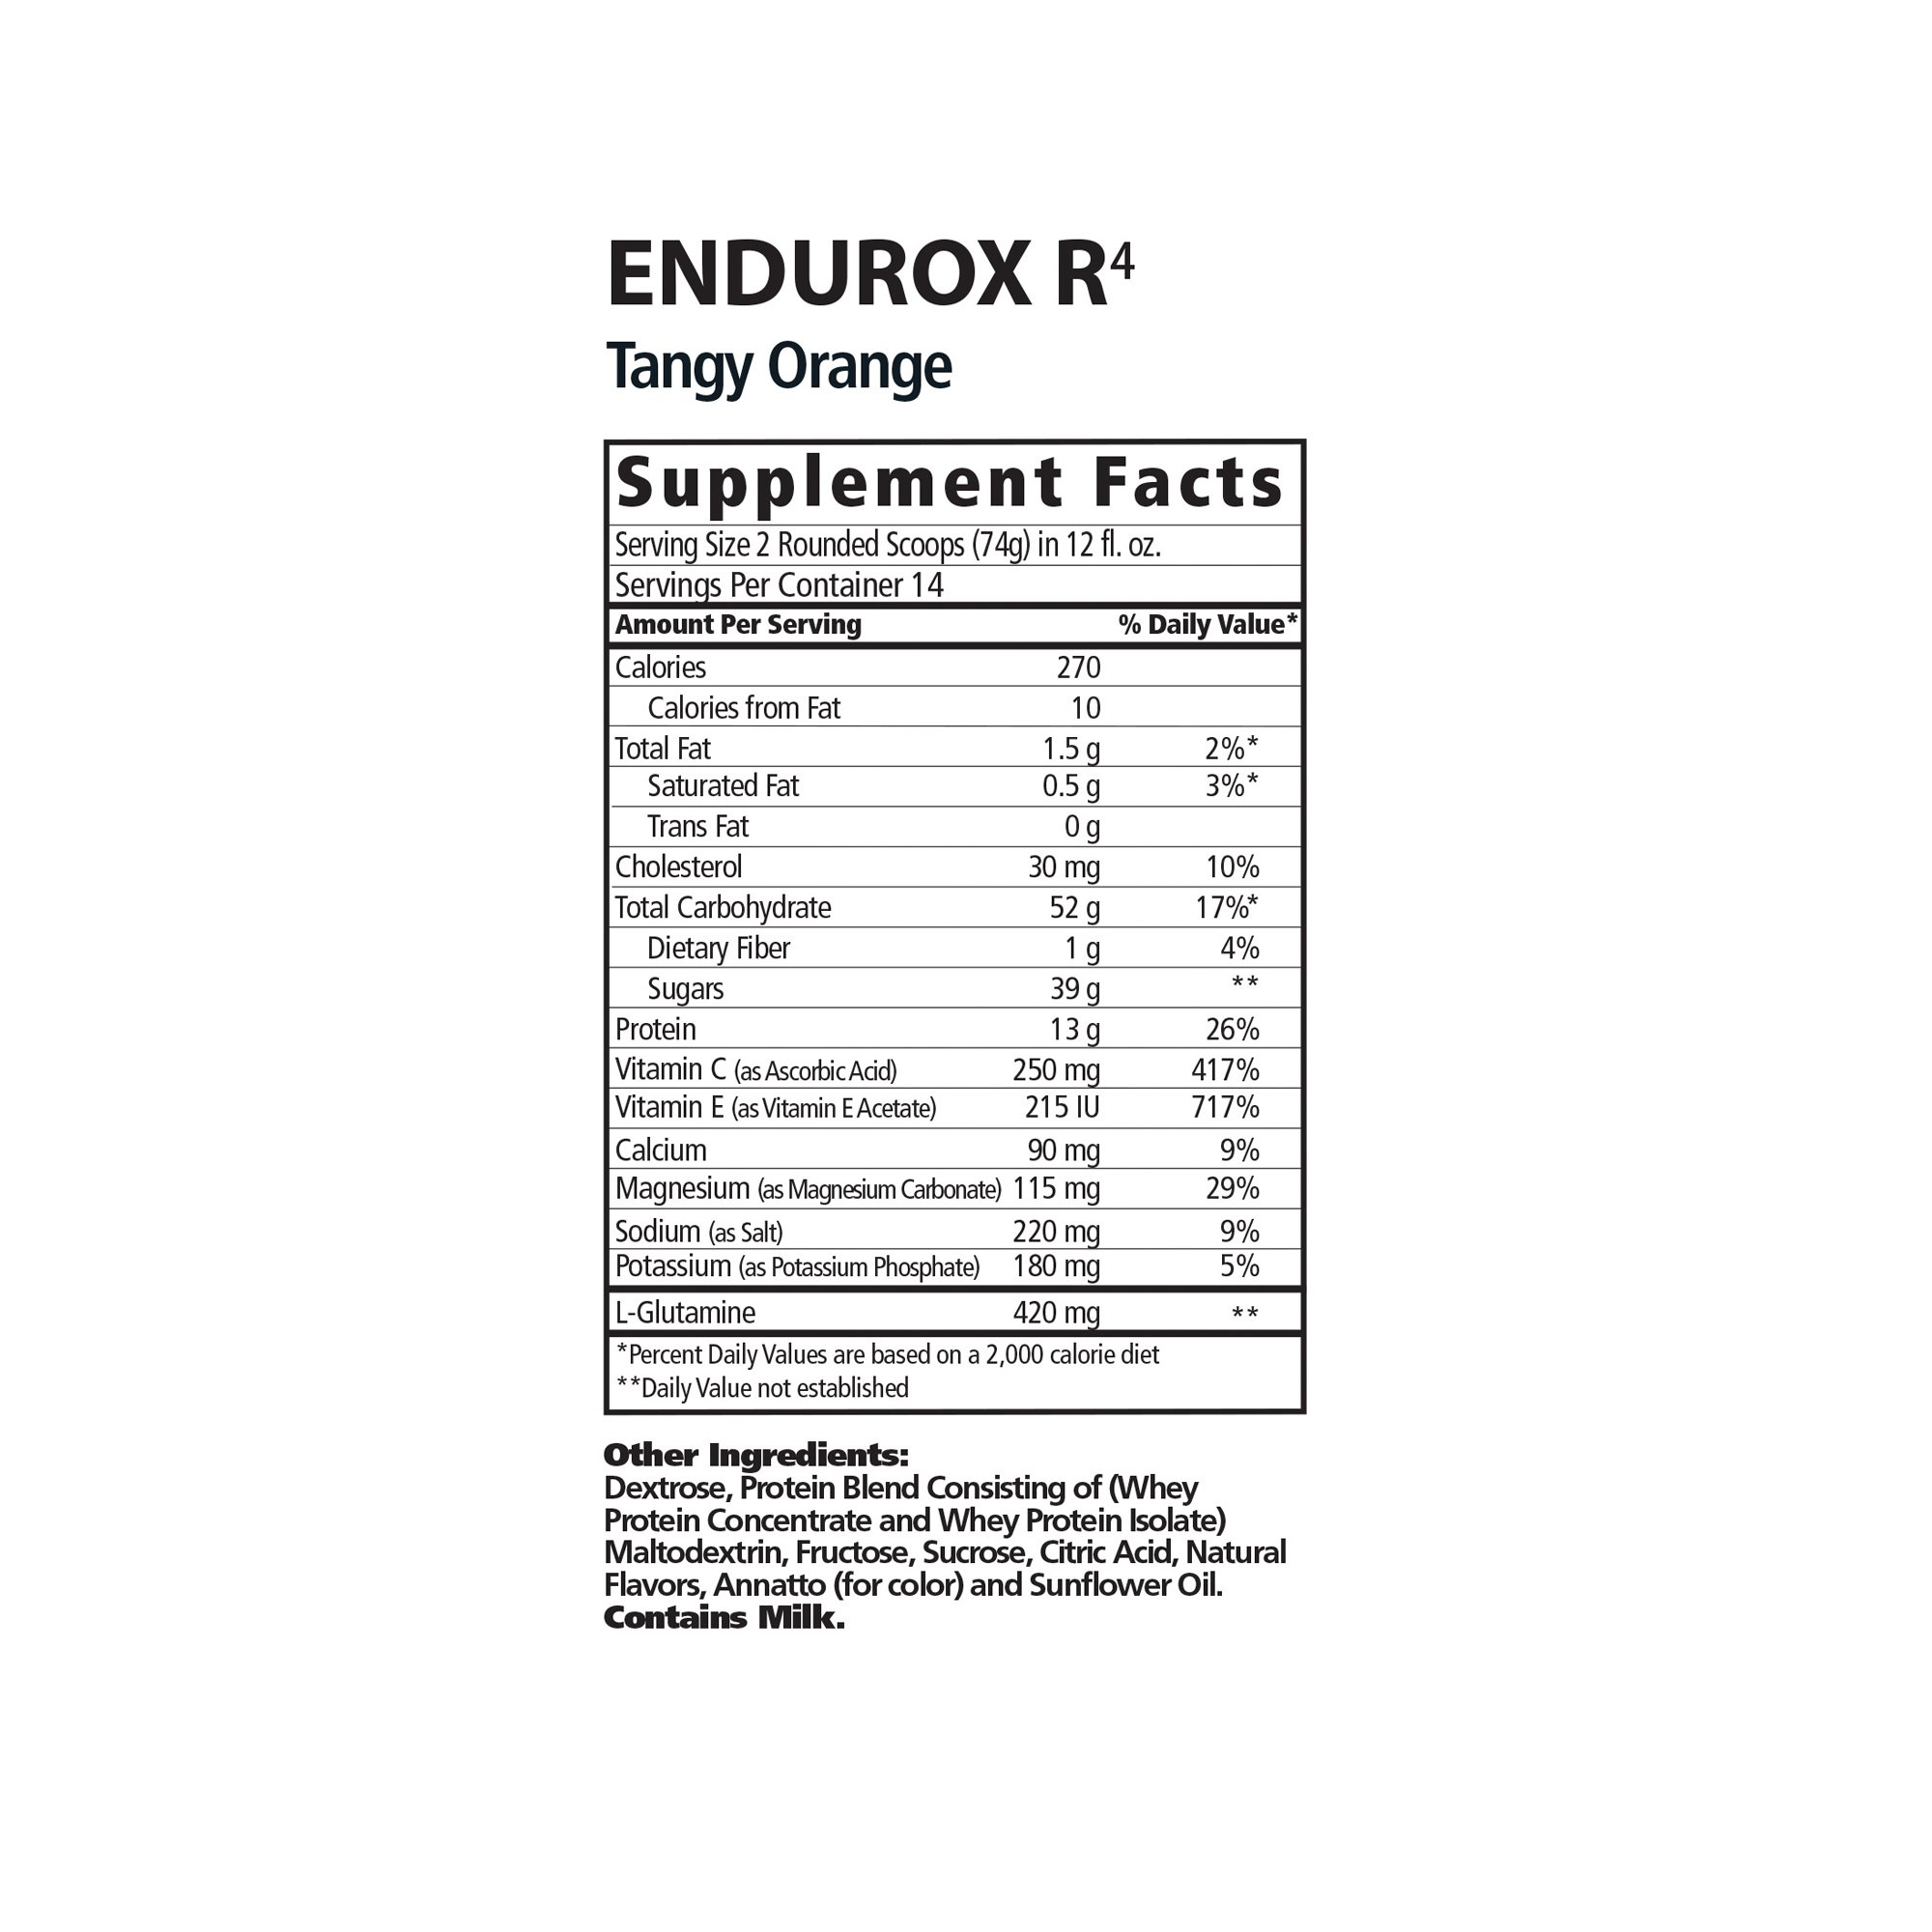 PacificHealth Endurox R4, All Natural Post Workout Recovery Drink Mix with Protein, Carbs, Electrolytes and Antioxidants for Superior Muscle Recovery, Net Wt. 4.56 lb, 28 Serving (Tangy Orange)